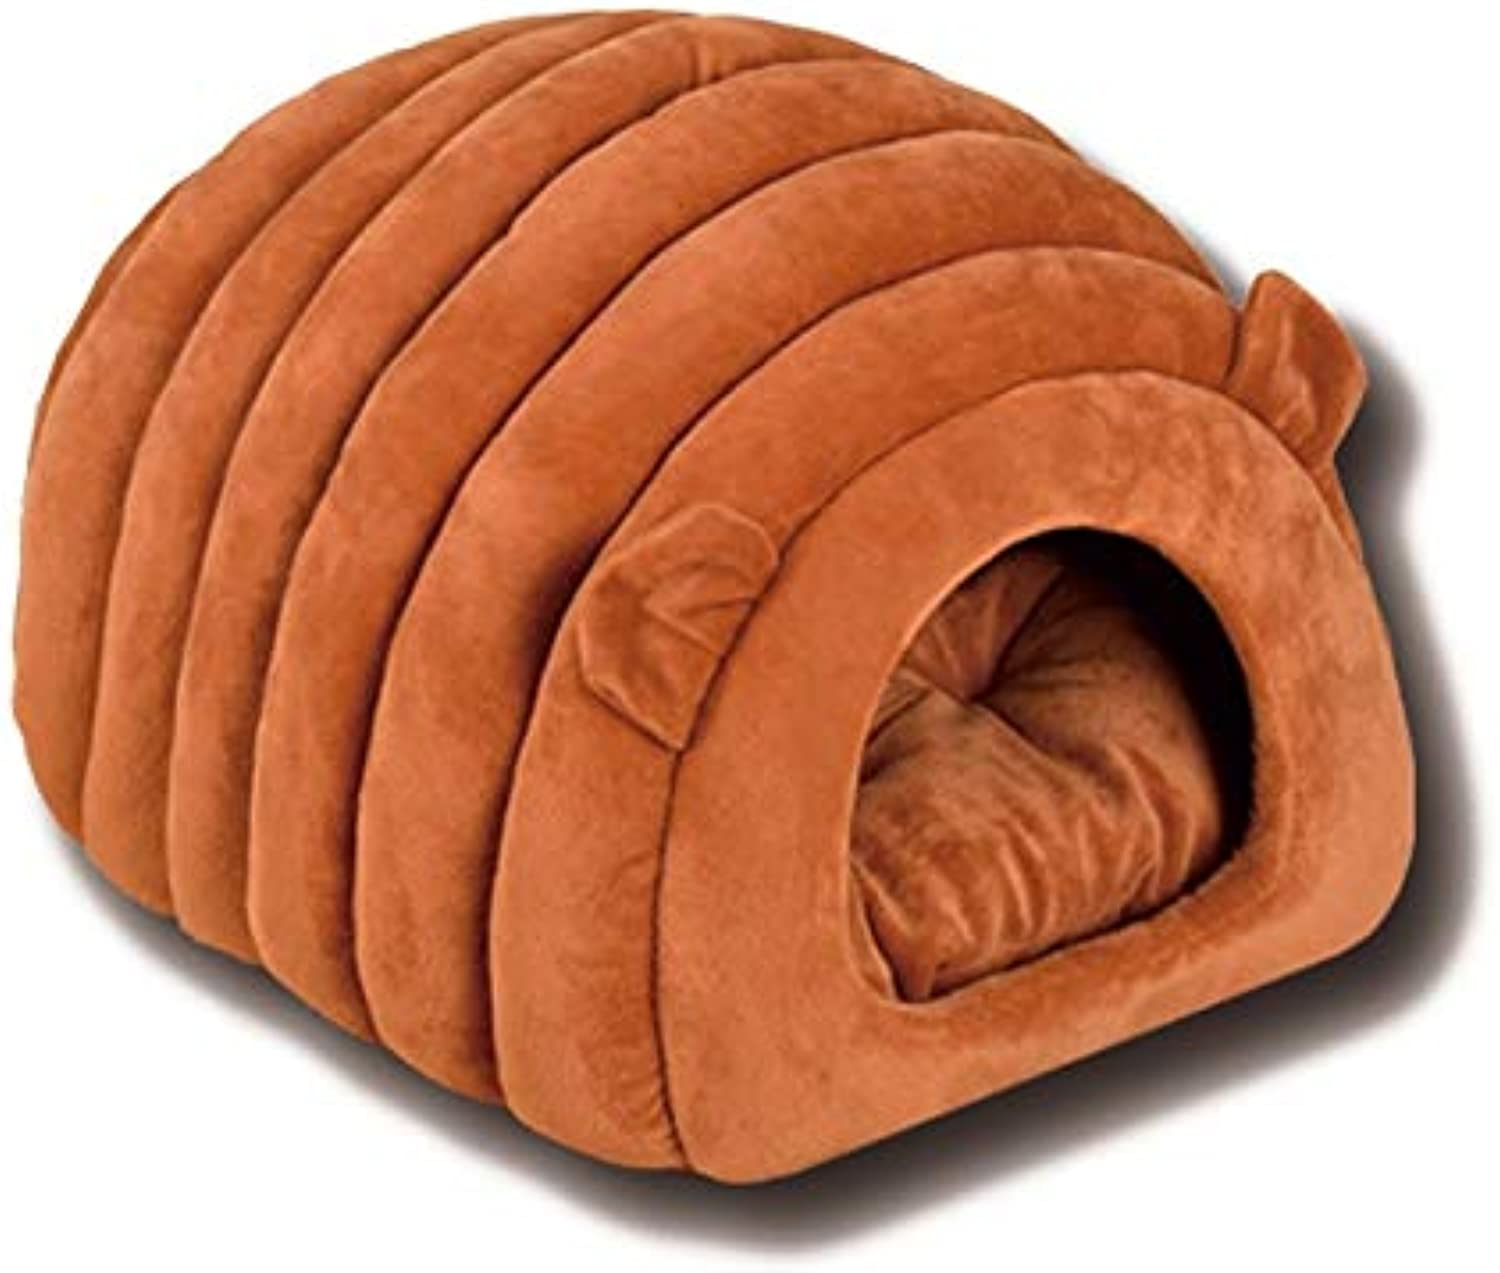 Cat House Dome Type cat Bed Pet Bed Winter cat Dog Too It is Soft Bed Cushion was it Fluffy Cute Sheep Modeling Warm Resting Place (Brown)